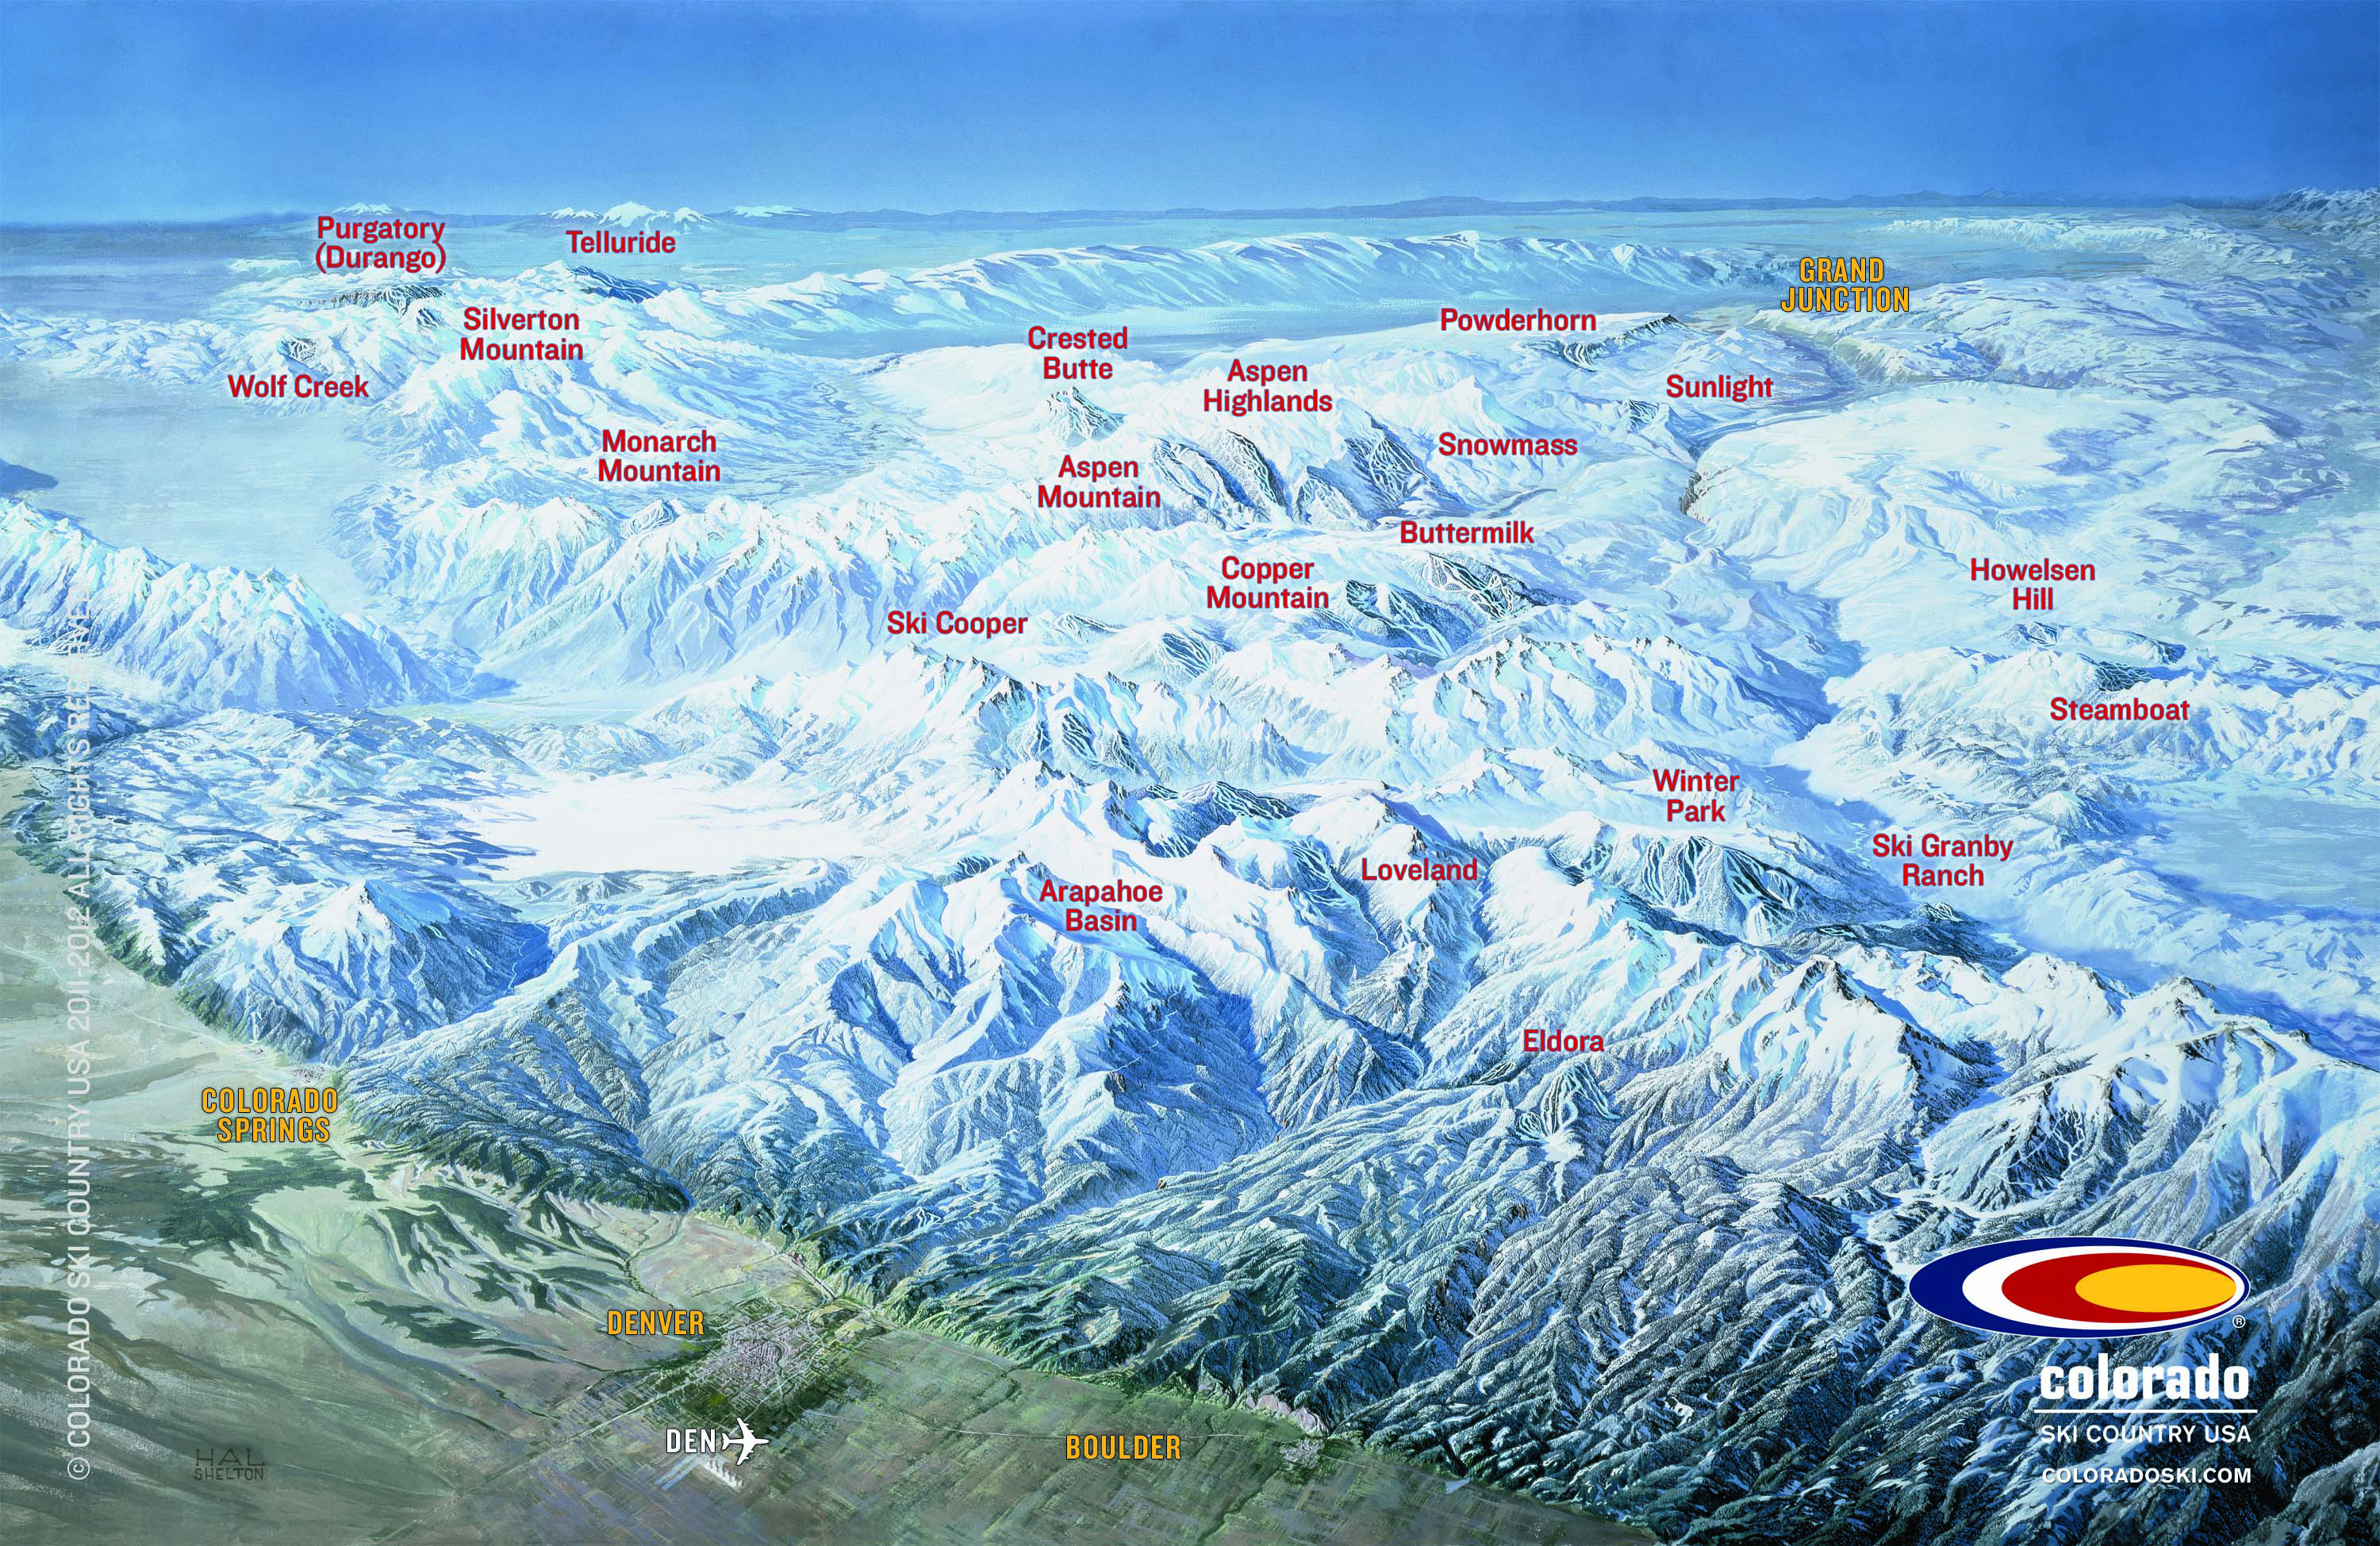 Colorado Ski Area Map Colorado ski resort map.   SnowBrains